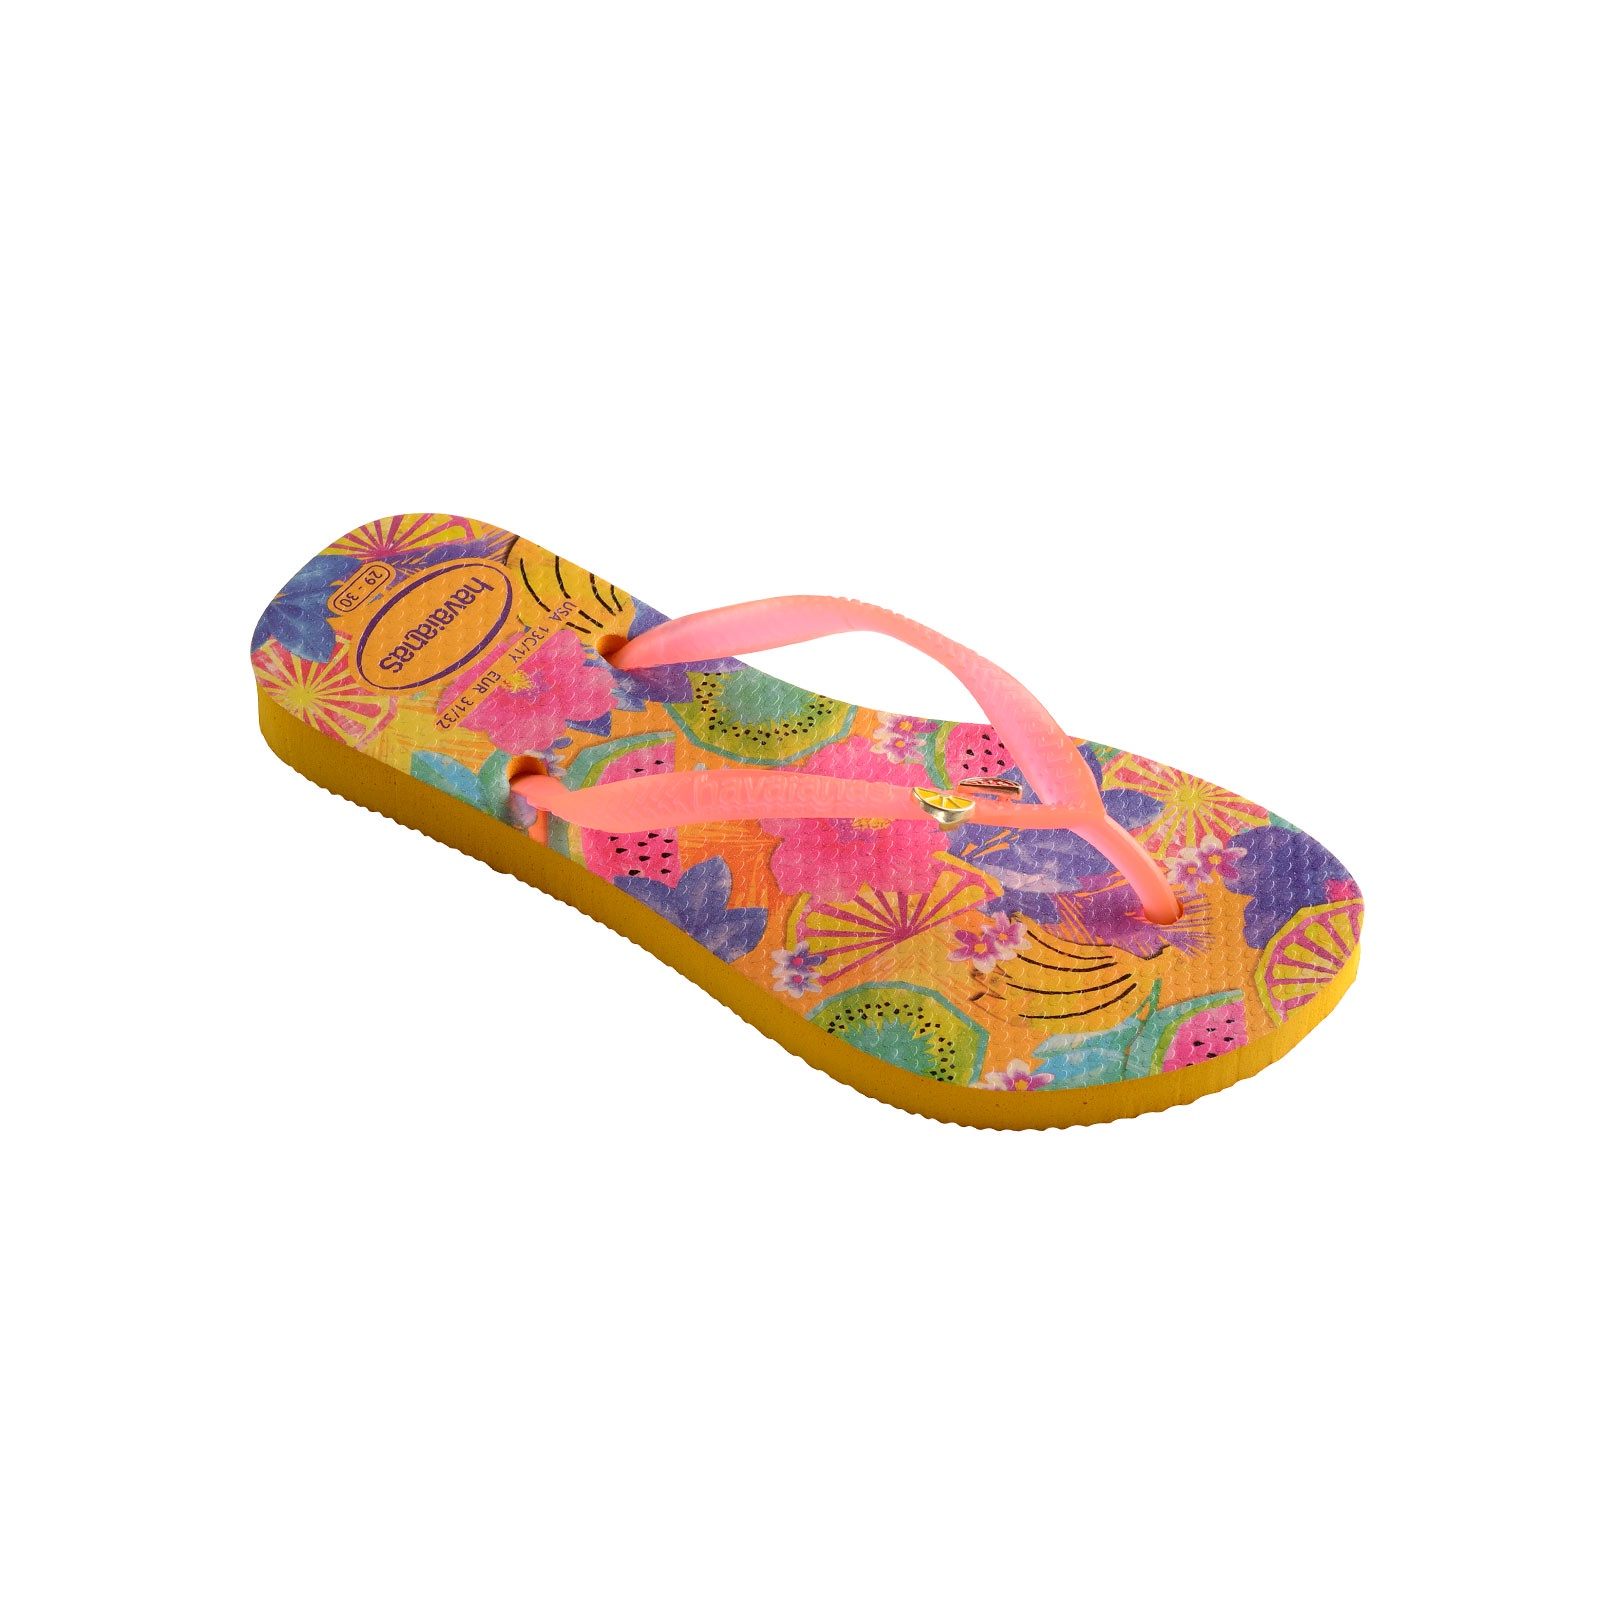 6a669811195af7 Havaianas Kids Slim Summer - Banana Yellow - Out There Surf